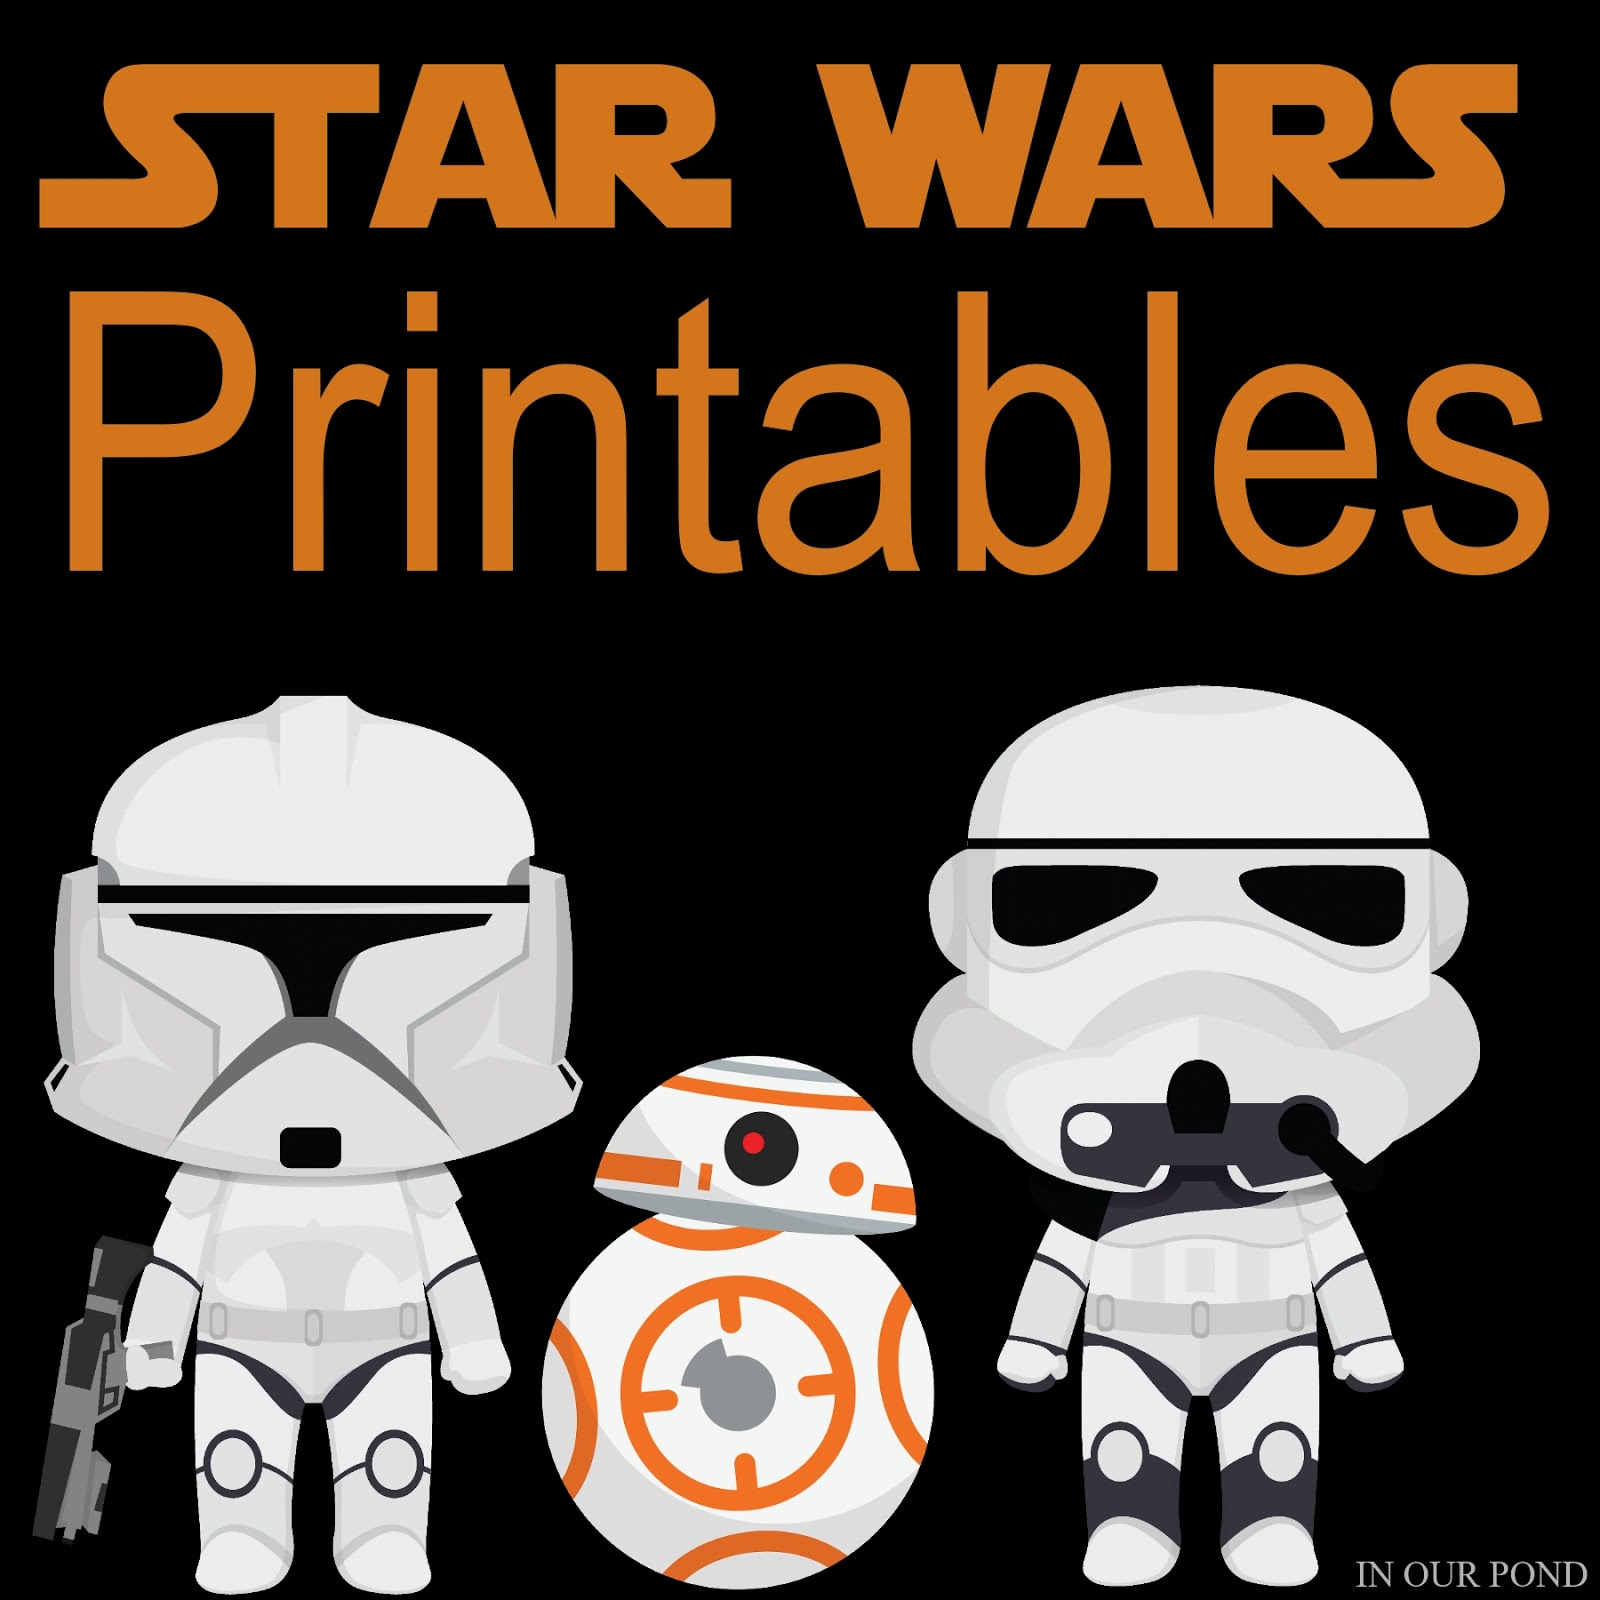 May The 4th Be With You Clip Art: Free Star Wars Printables